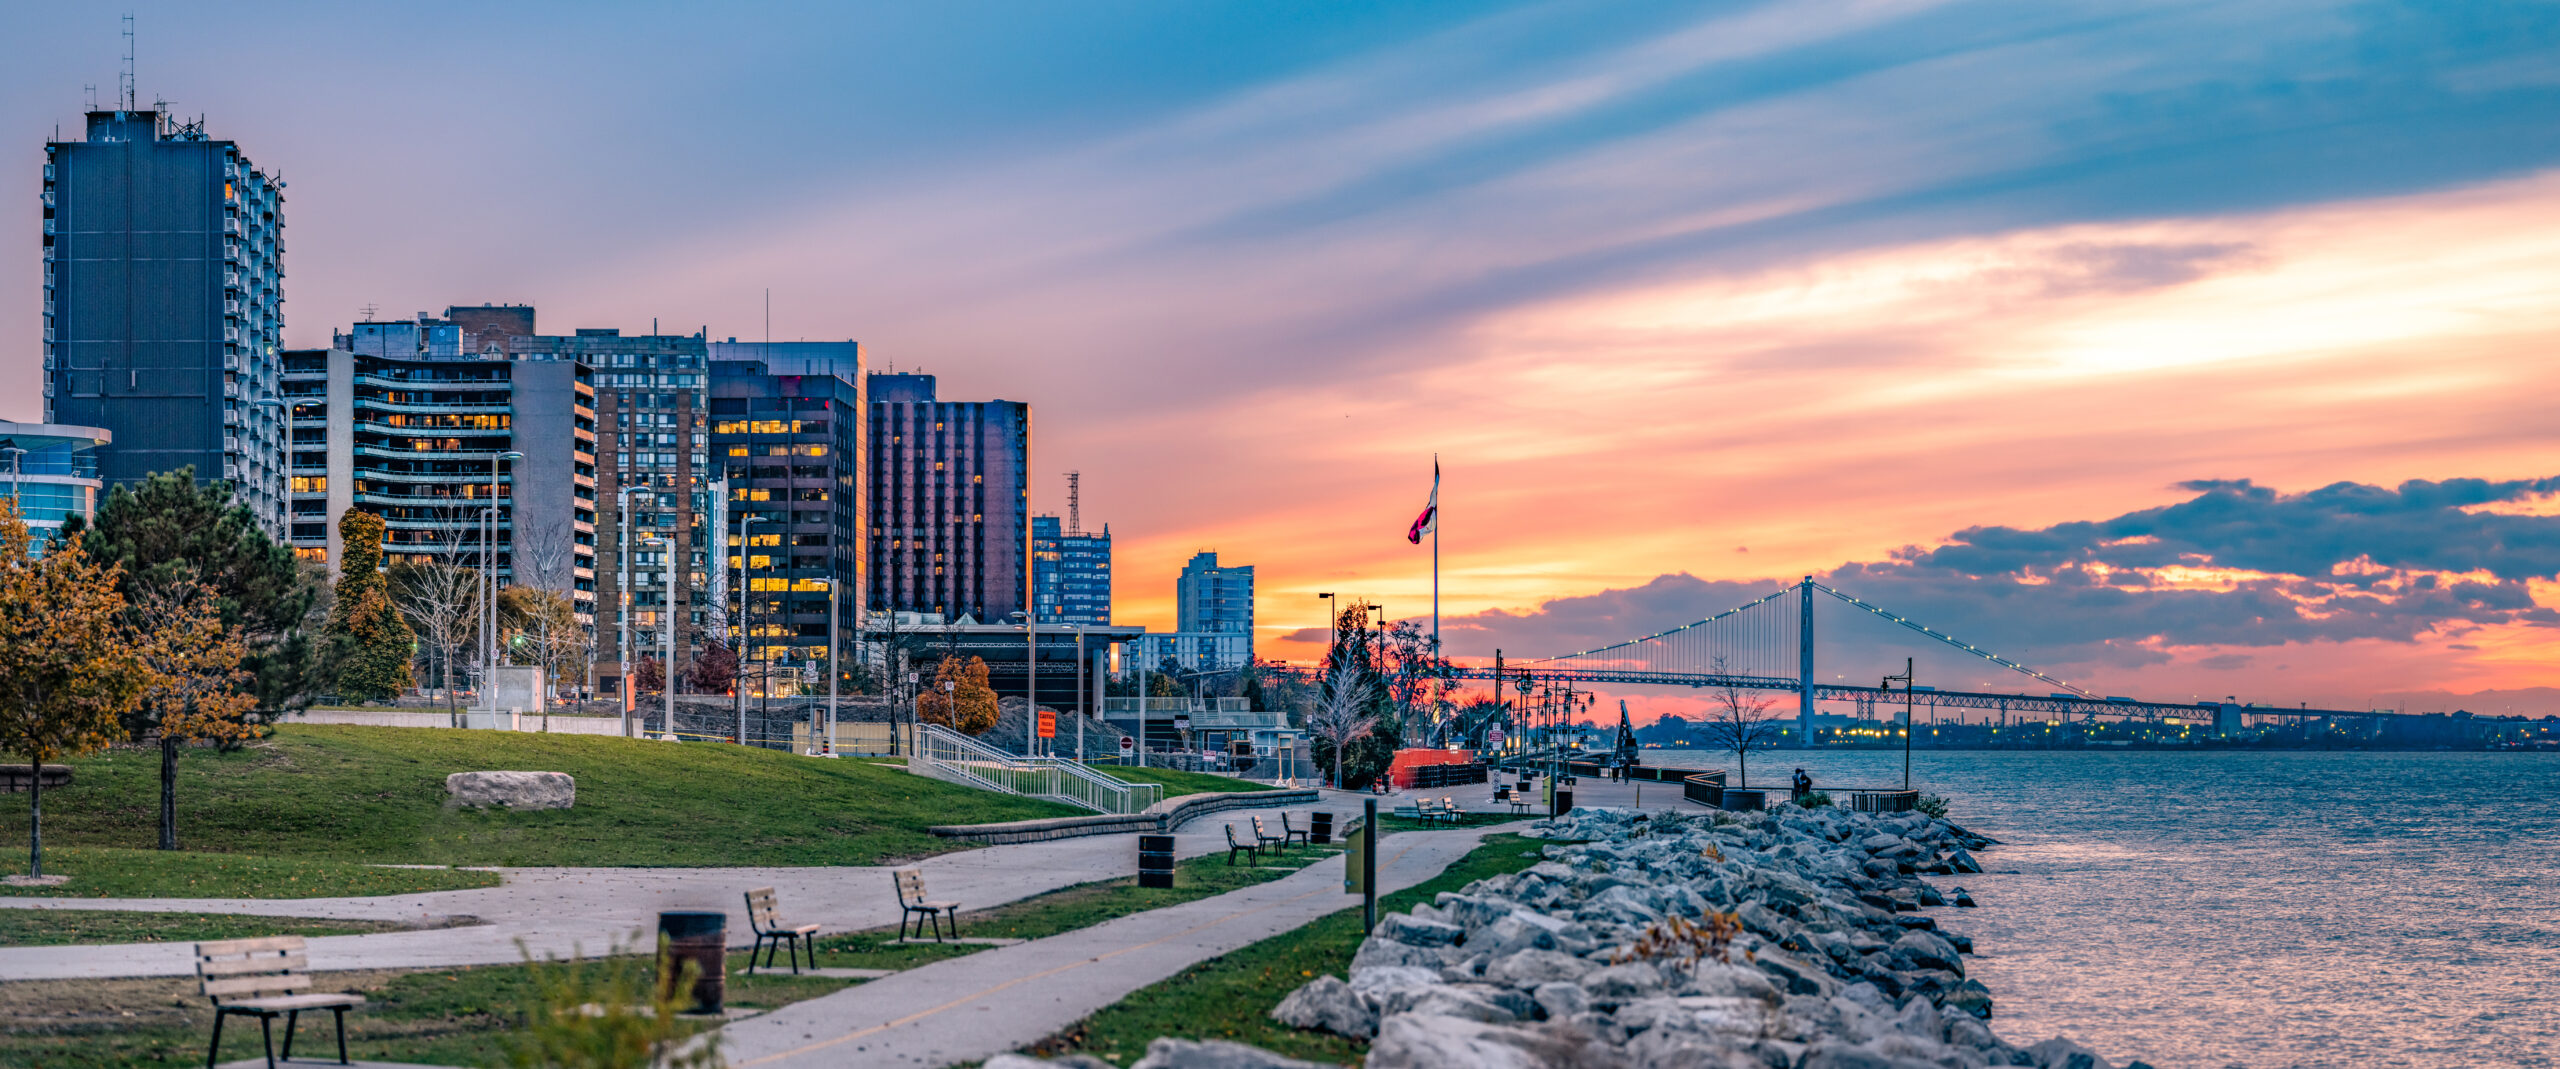 The Windsor, Ontario skyline & waterfront at dusk.